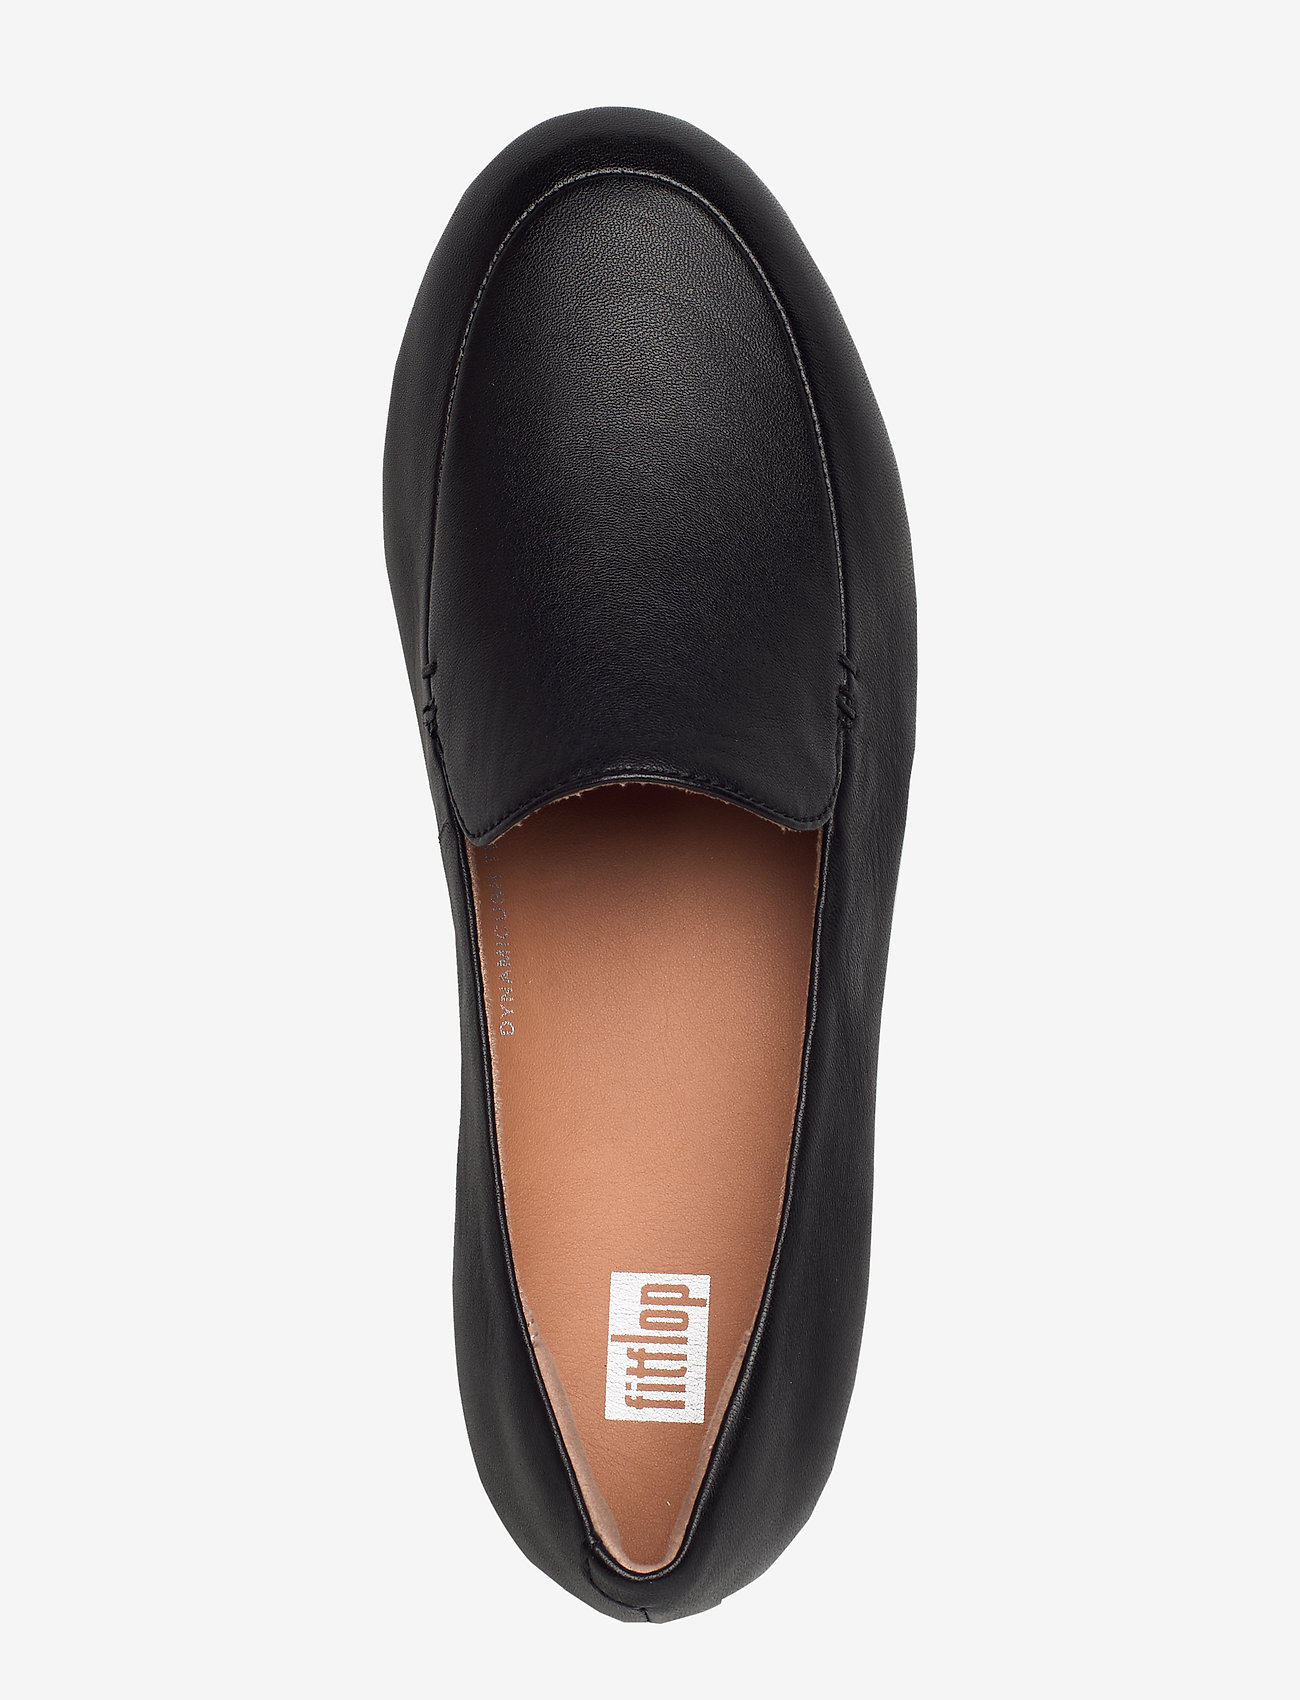 Lena Loafers (All Black) - FitFlop